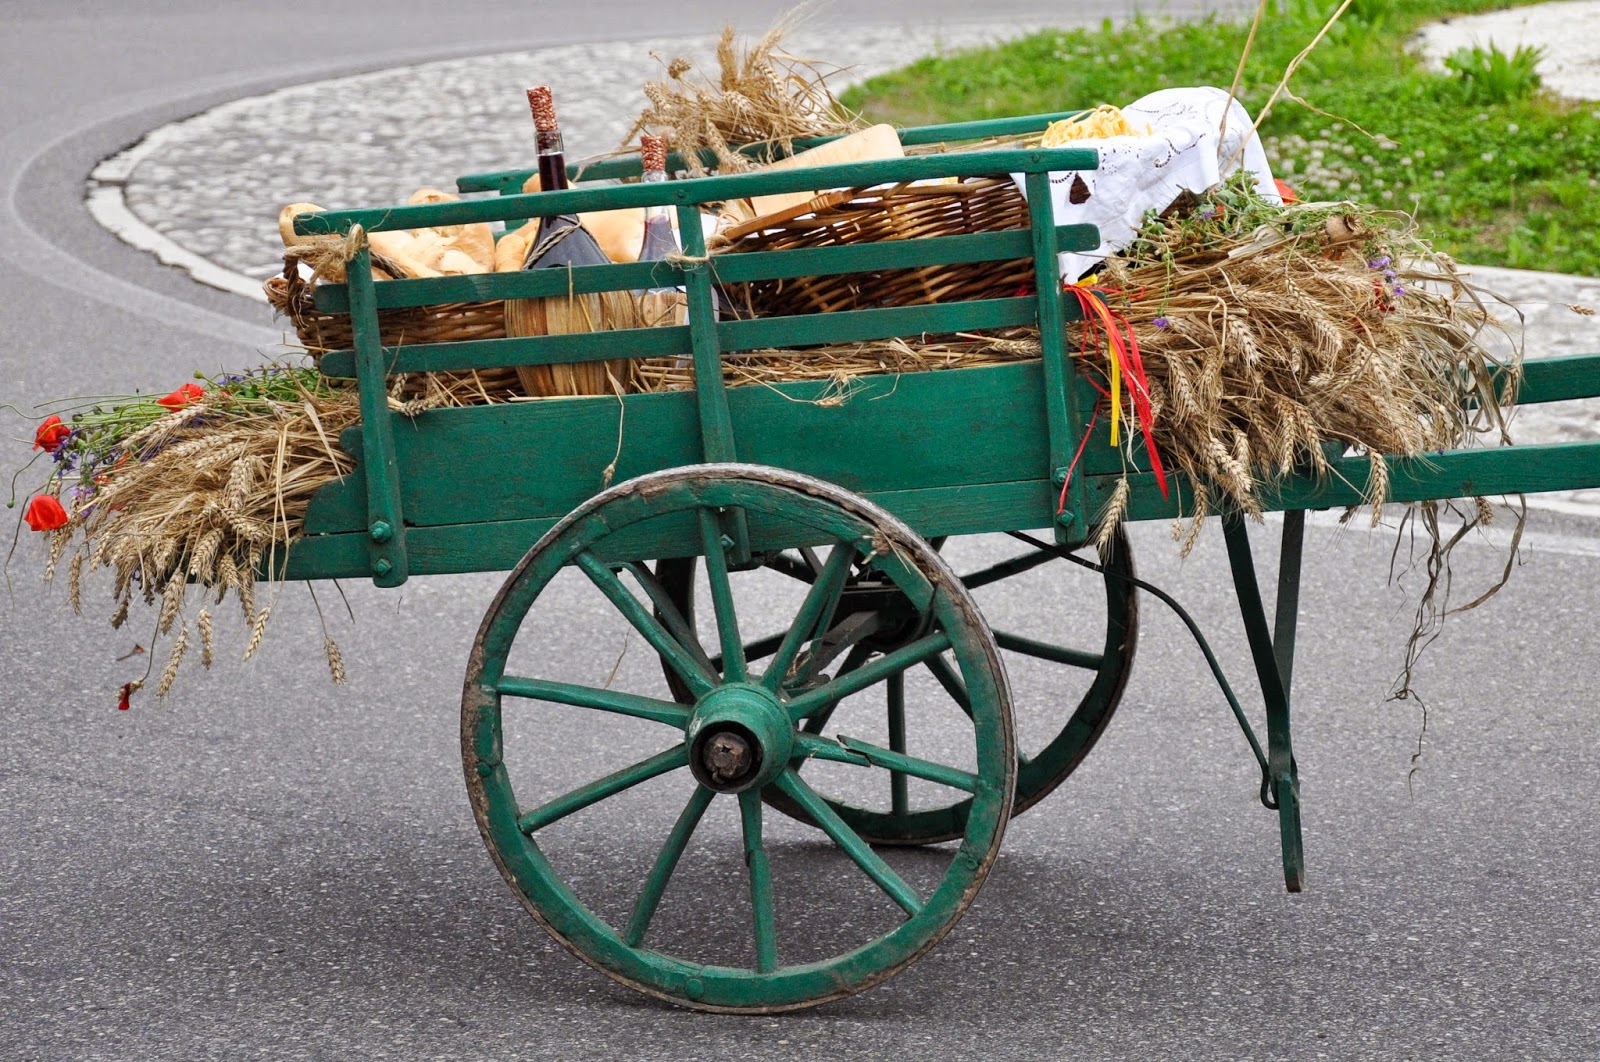 A cart at the Parade, Donkey Race, Romano d'Ezzelino, Veneto, Italy